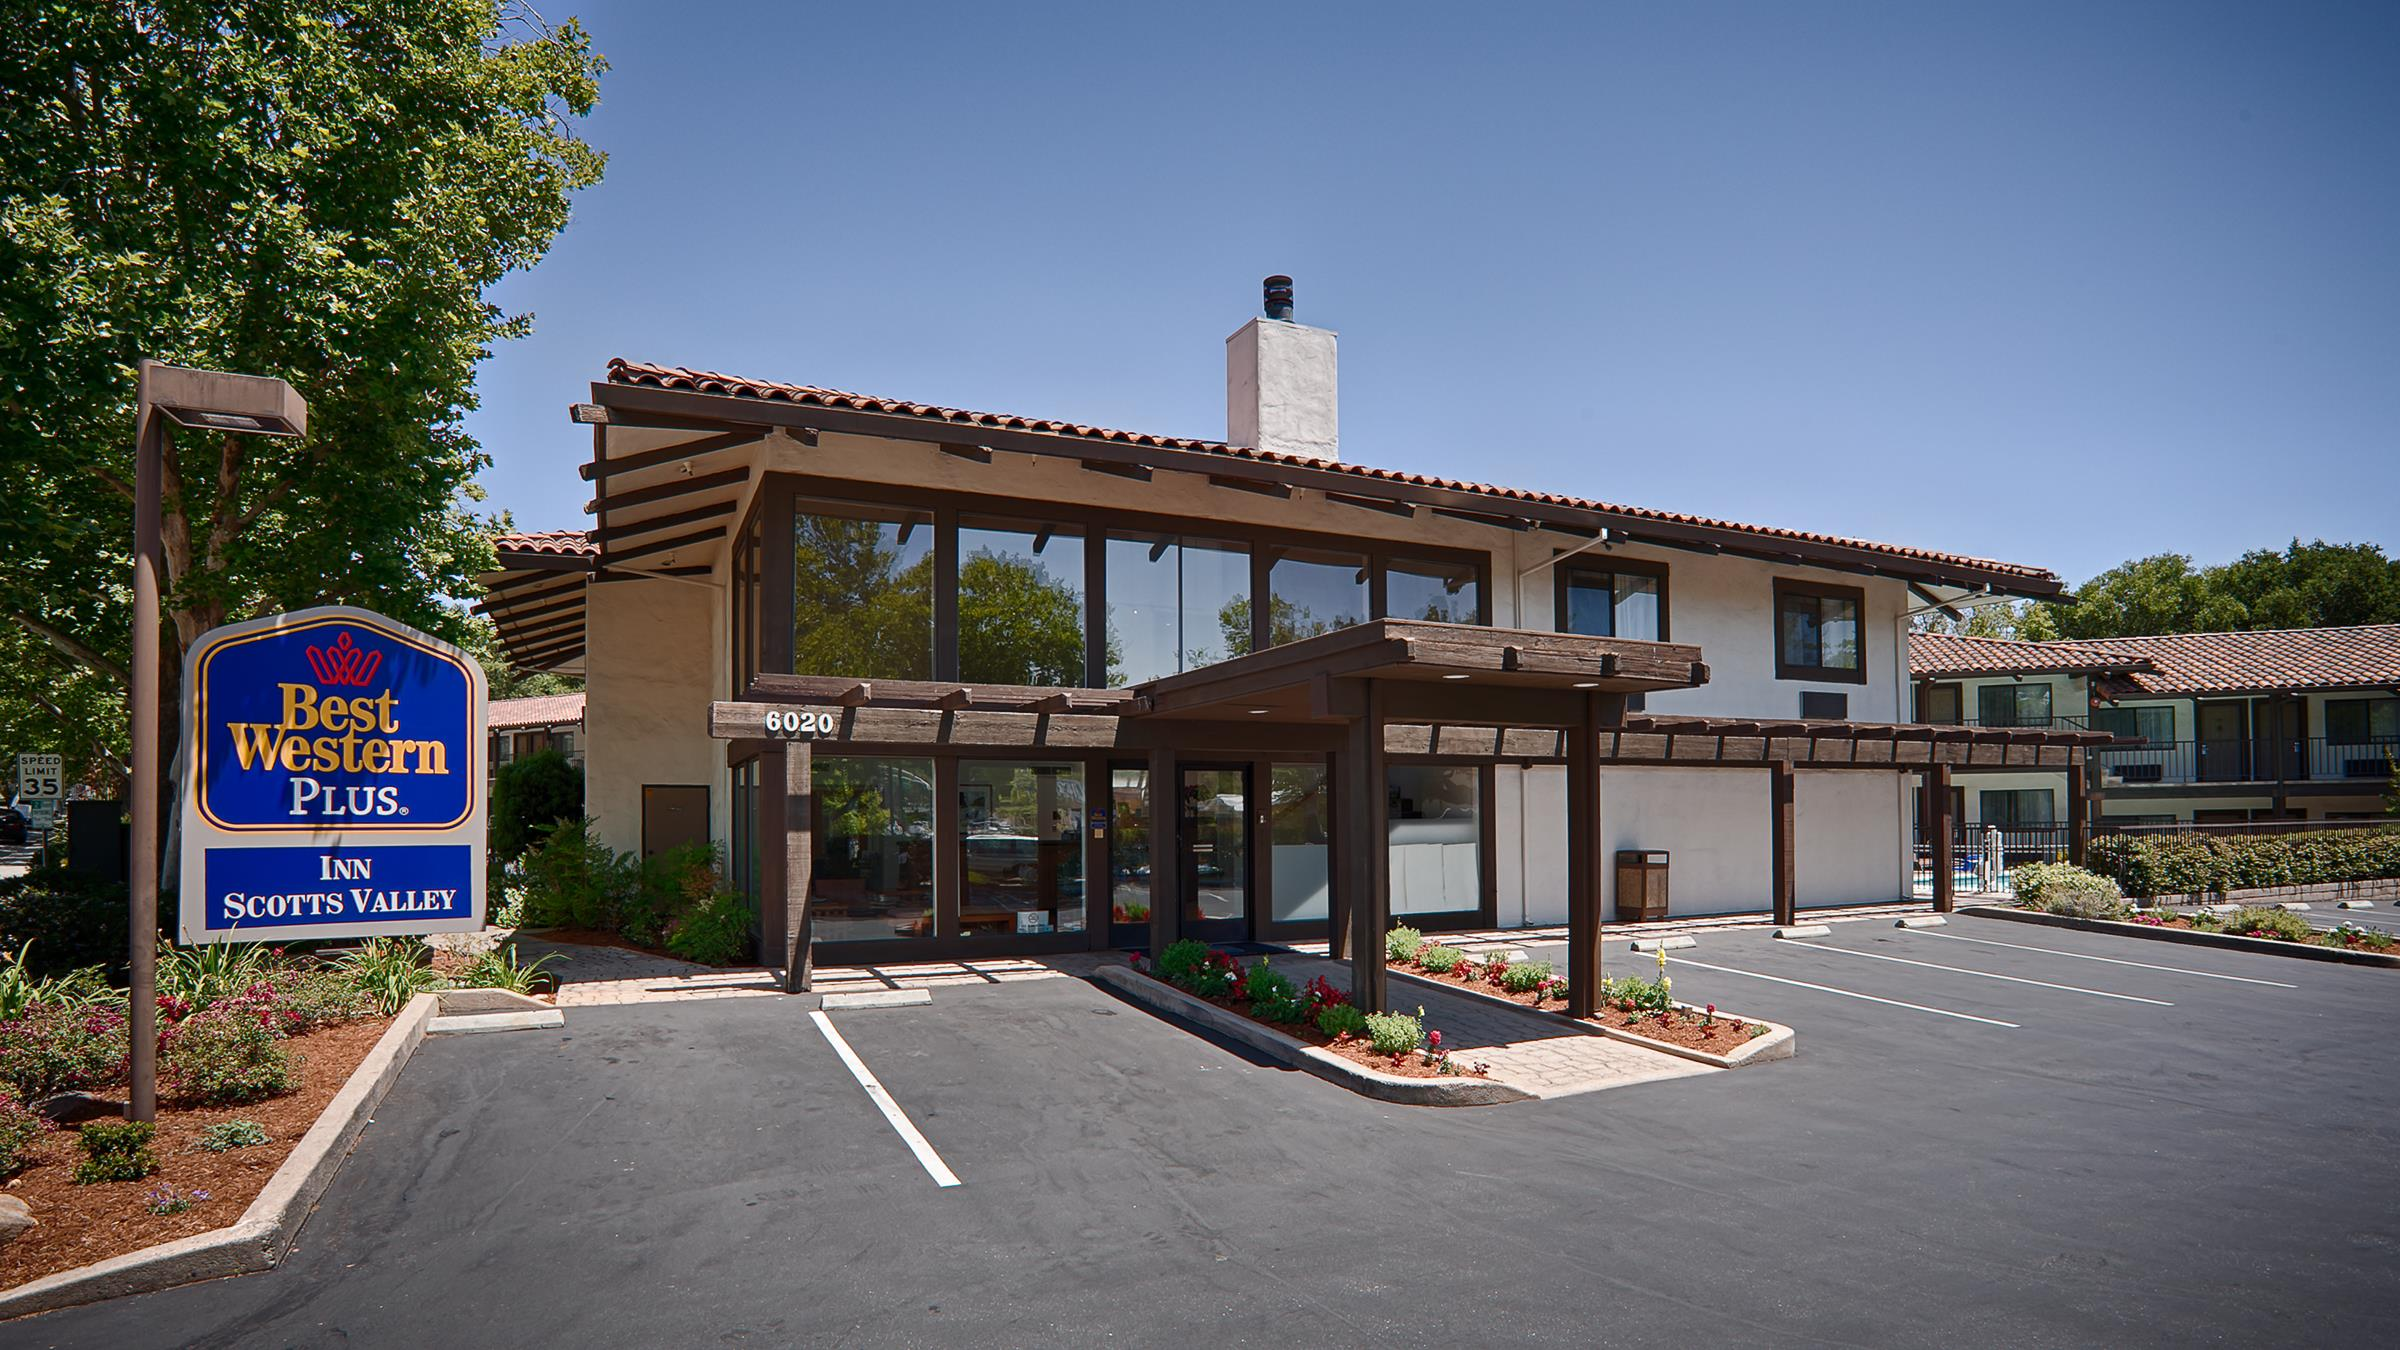 scotts valley Scotts valley oral & maxillofacial surgery offers oral surgery services including dental implants & more, in scotts valley ca 831-430-9910.